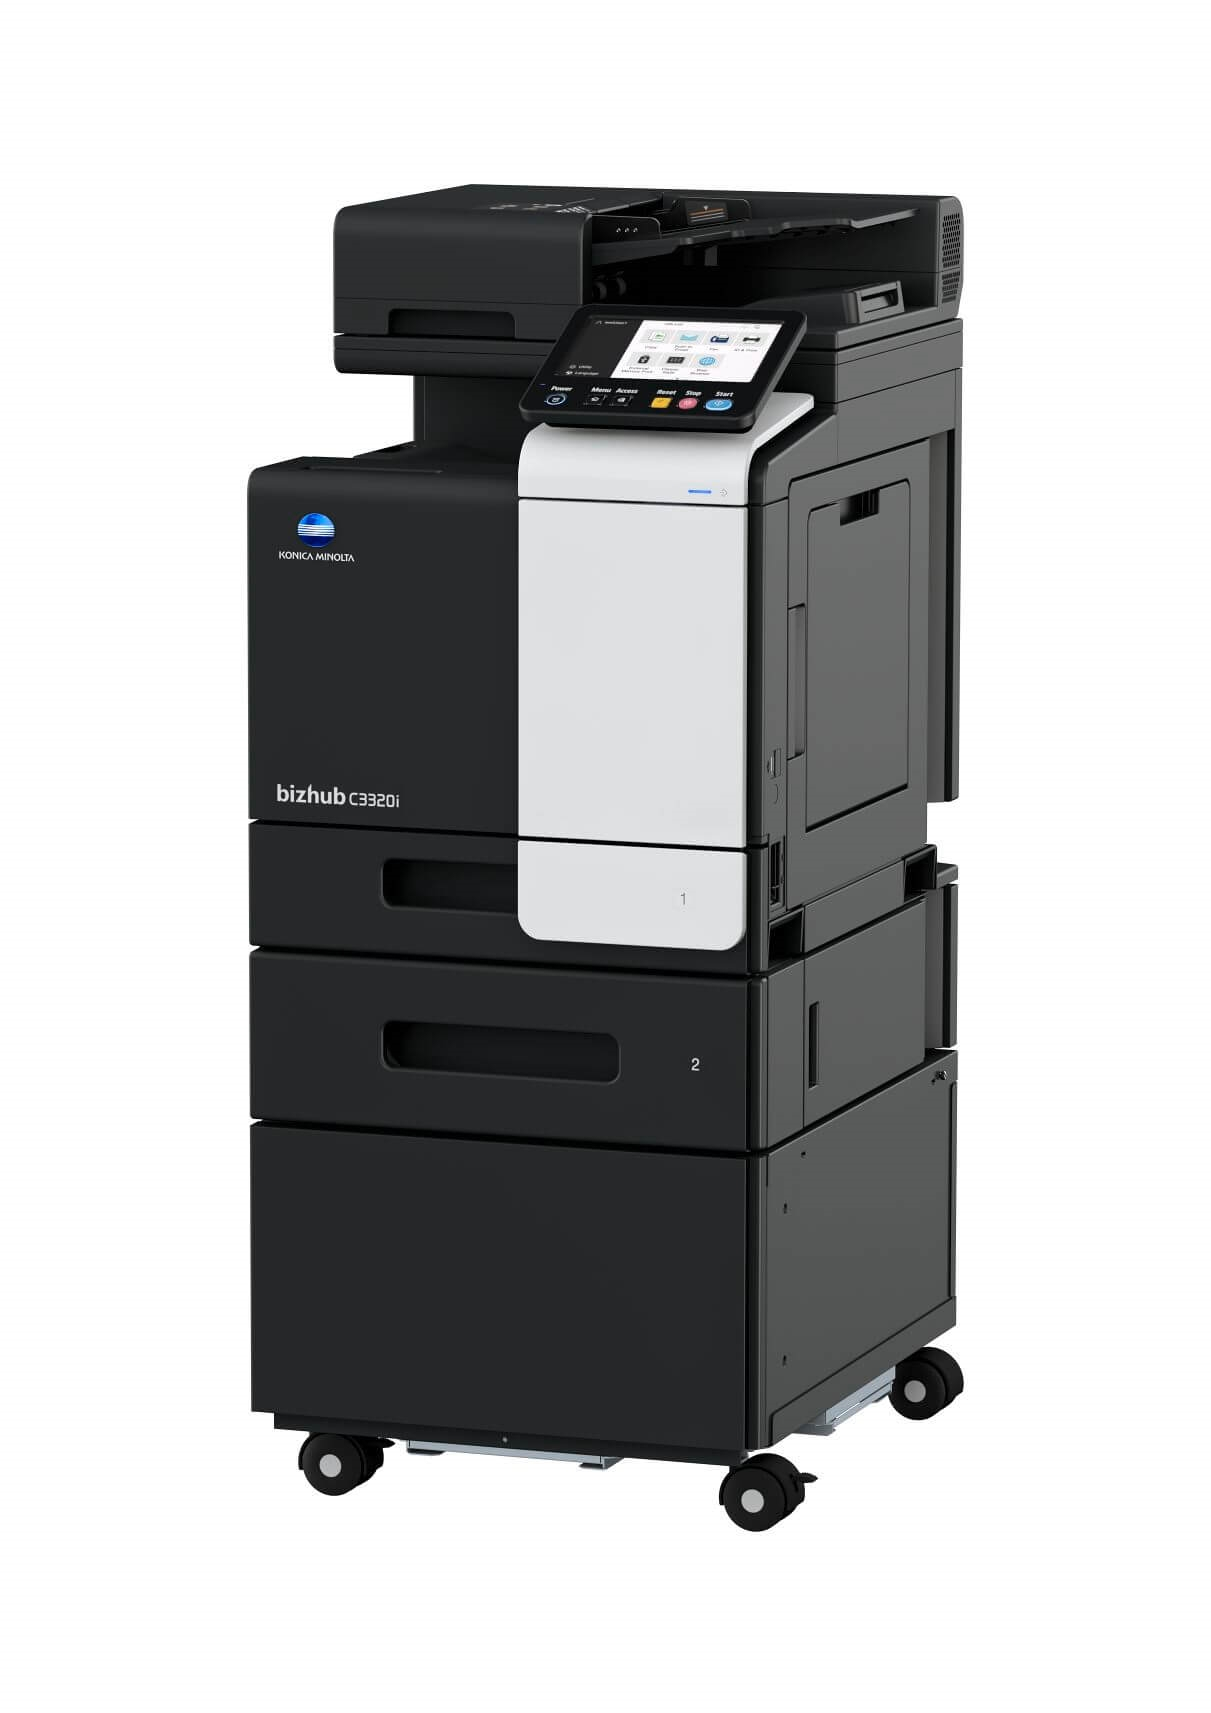 Konica Minolta i-series bizhub c3320i multifunctional printer